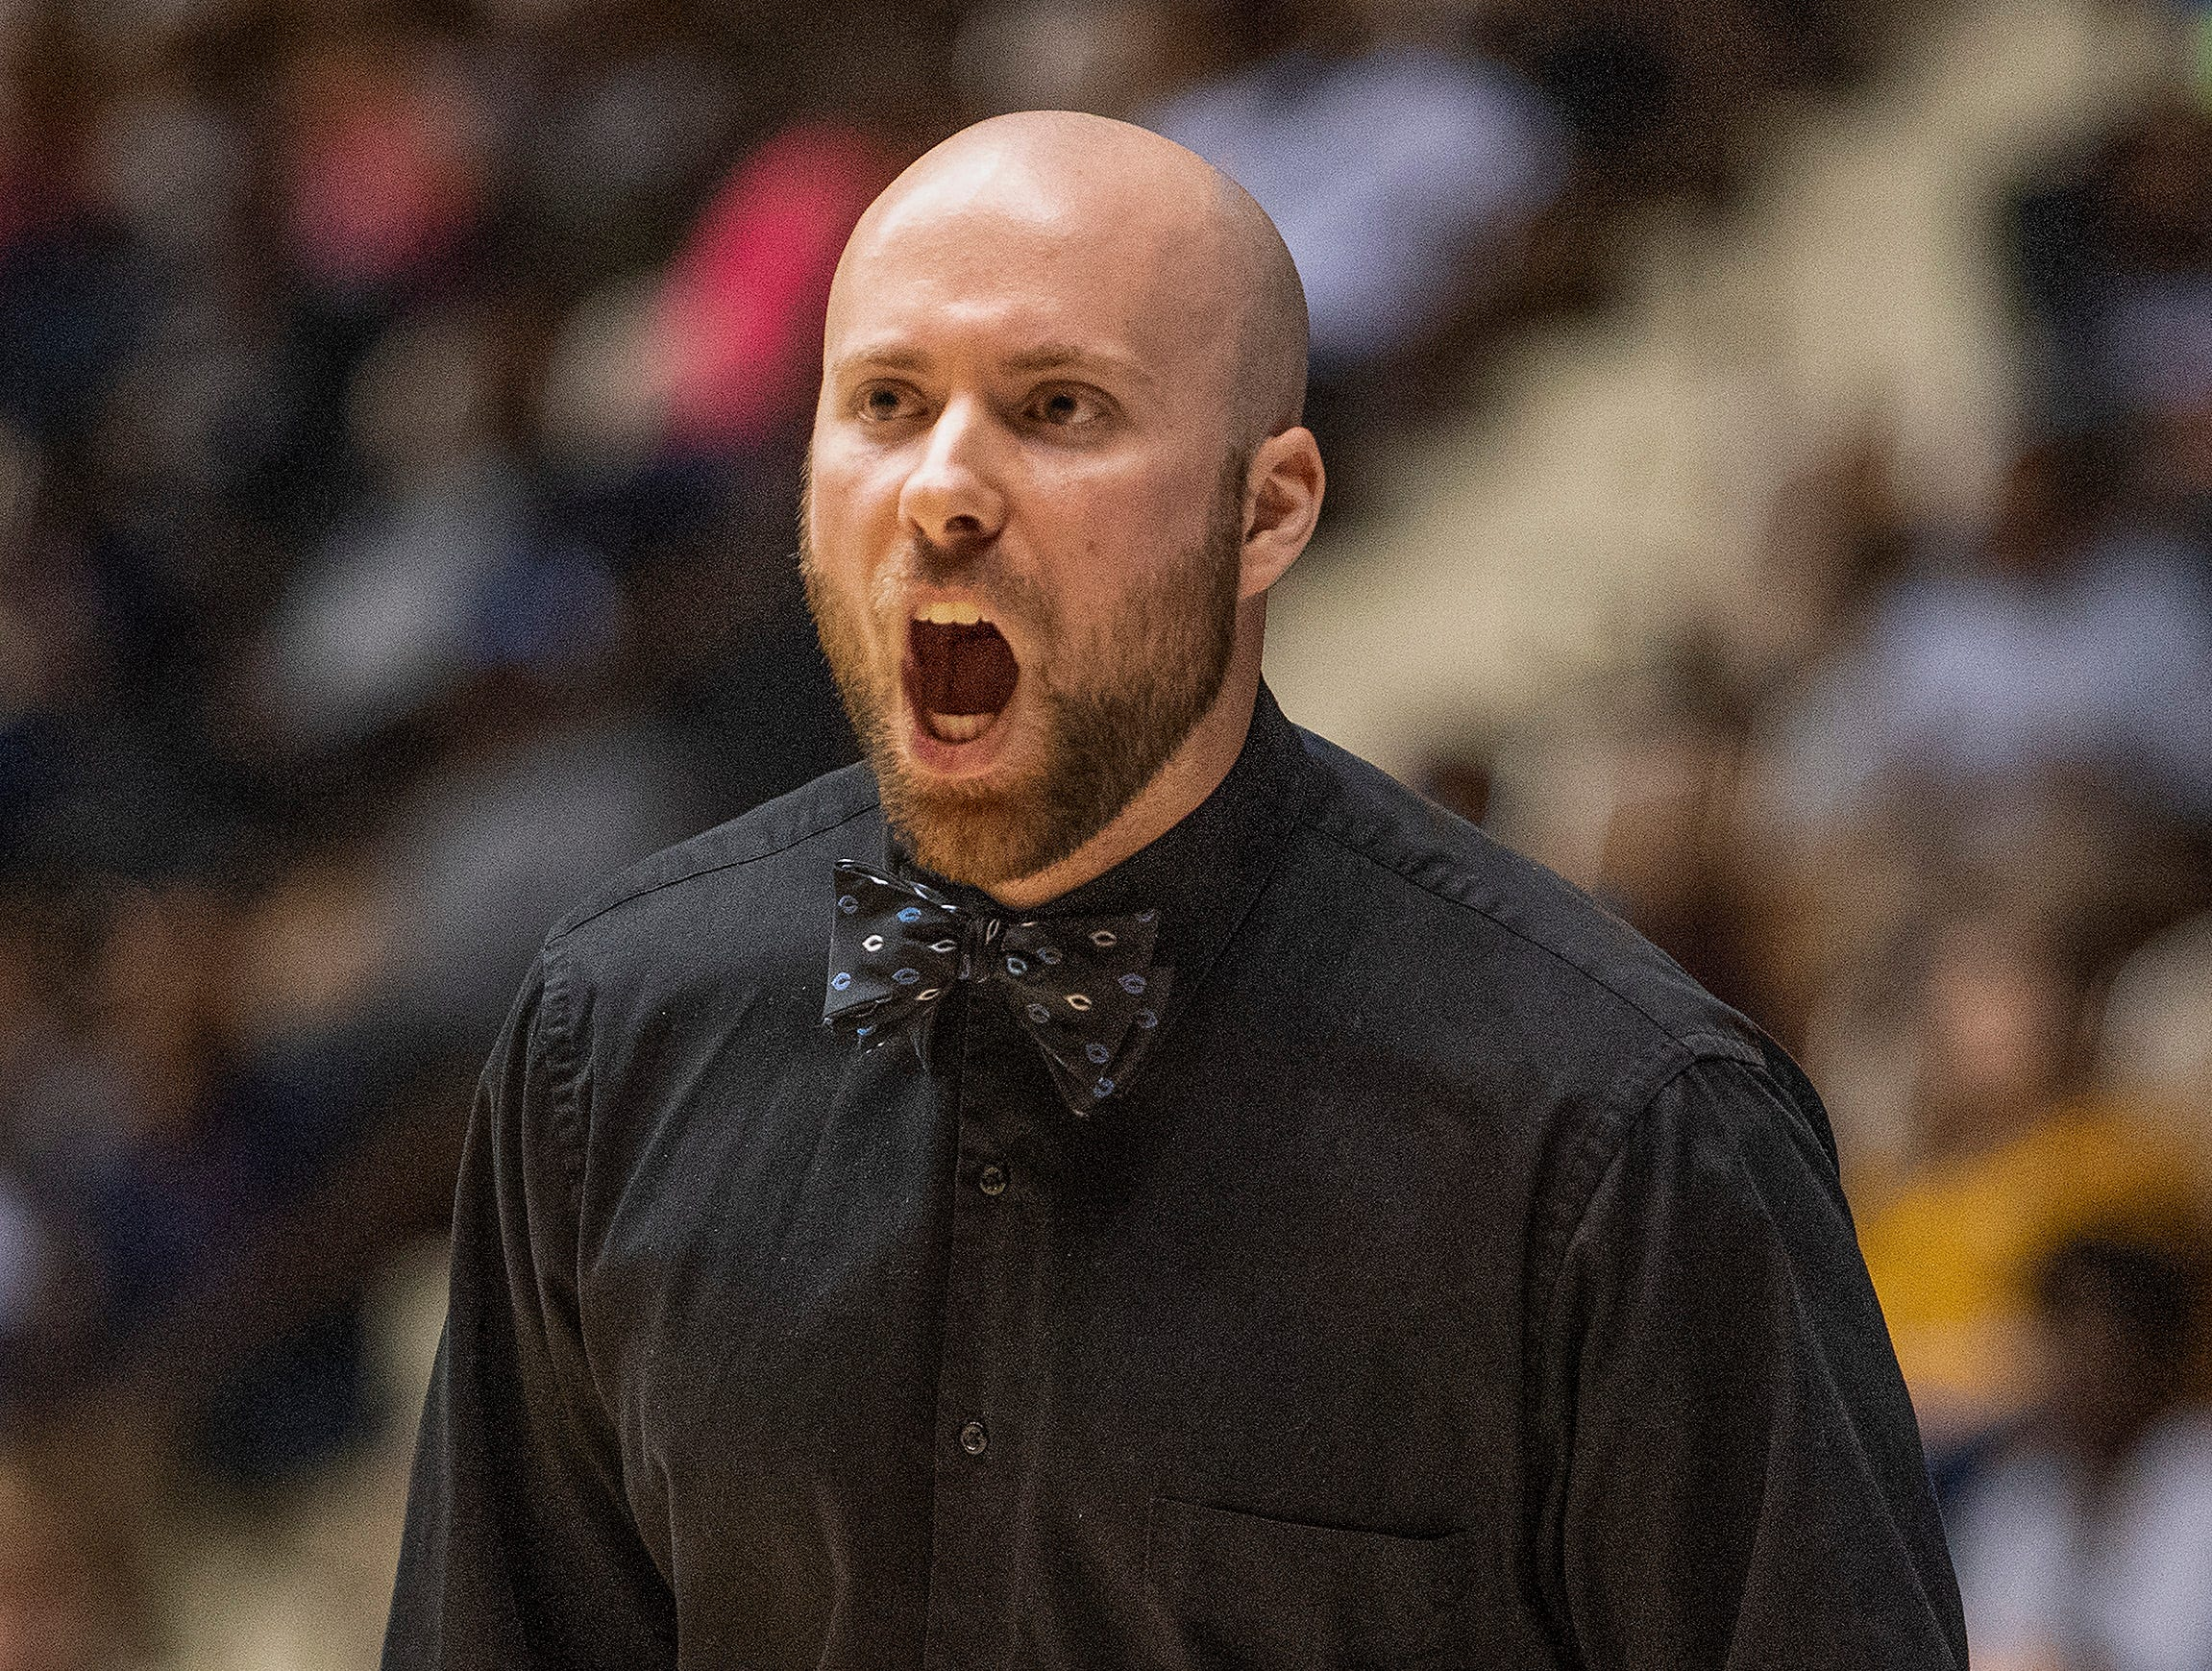 Childersburg coach Gavin King coaches against Trinity in AHSAA Regional action at Garrett Coliseum in Montgomery, Ala., on Monday February 18, 2019.